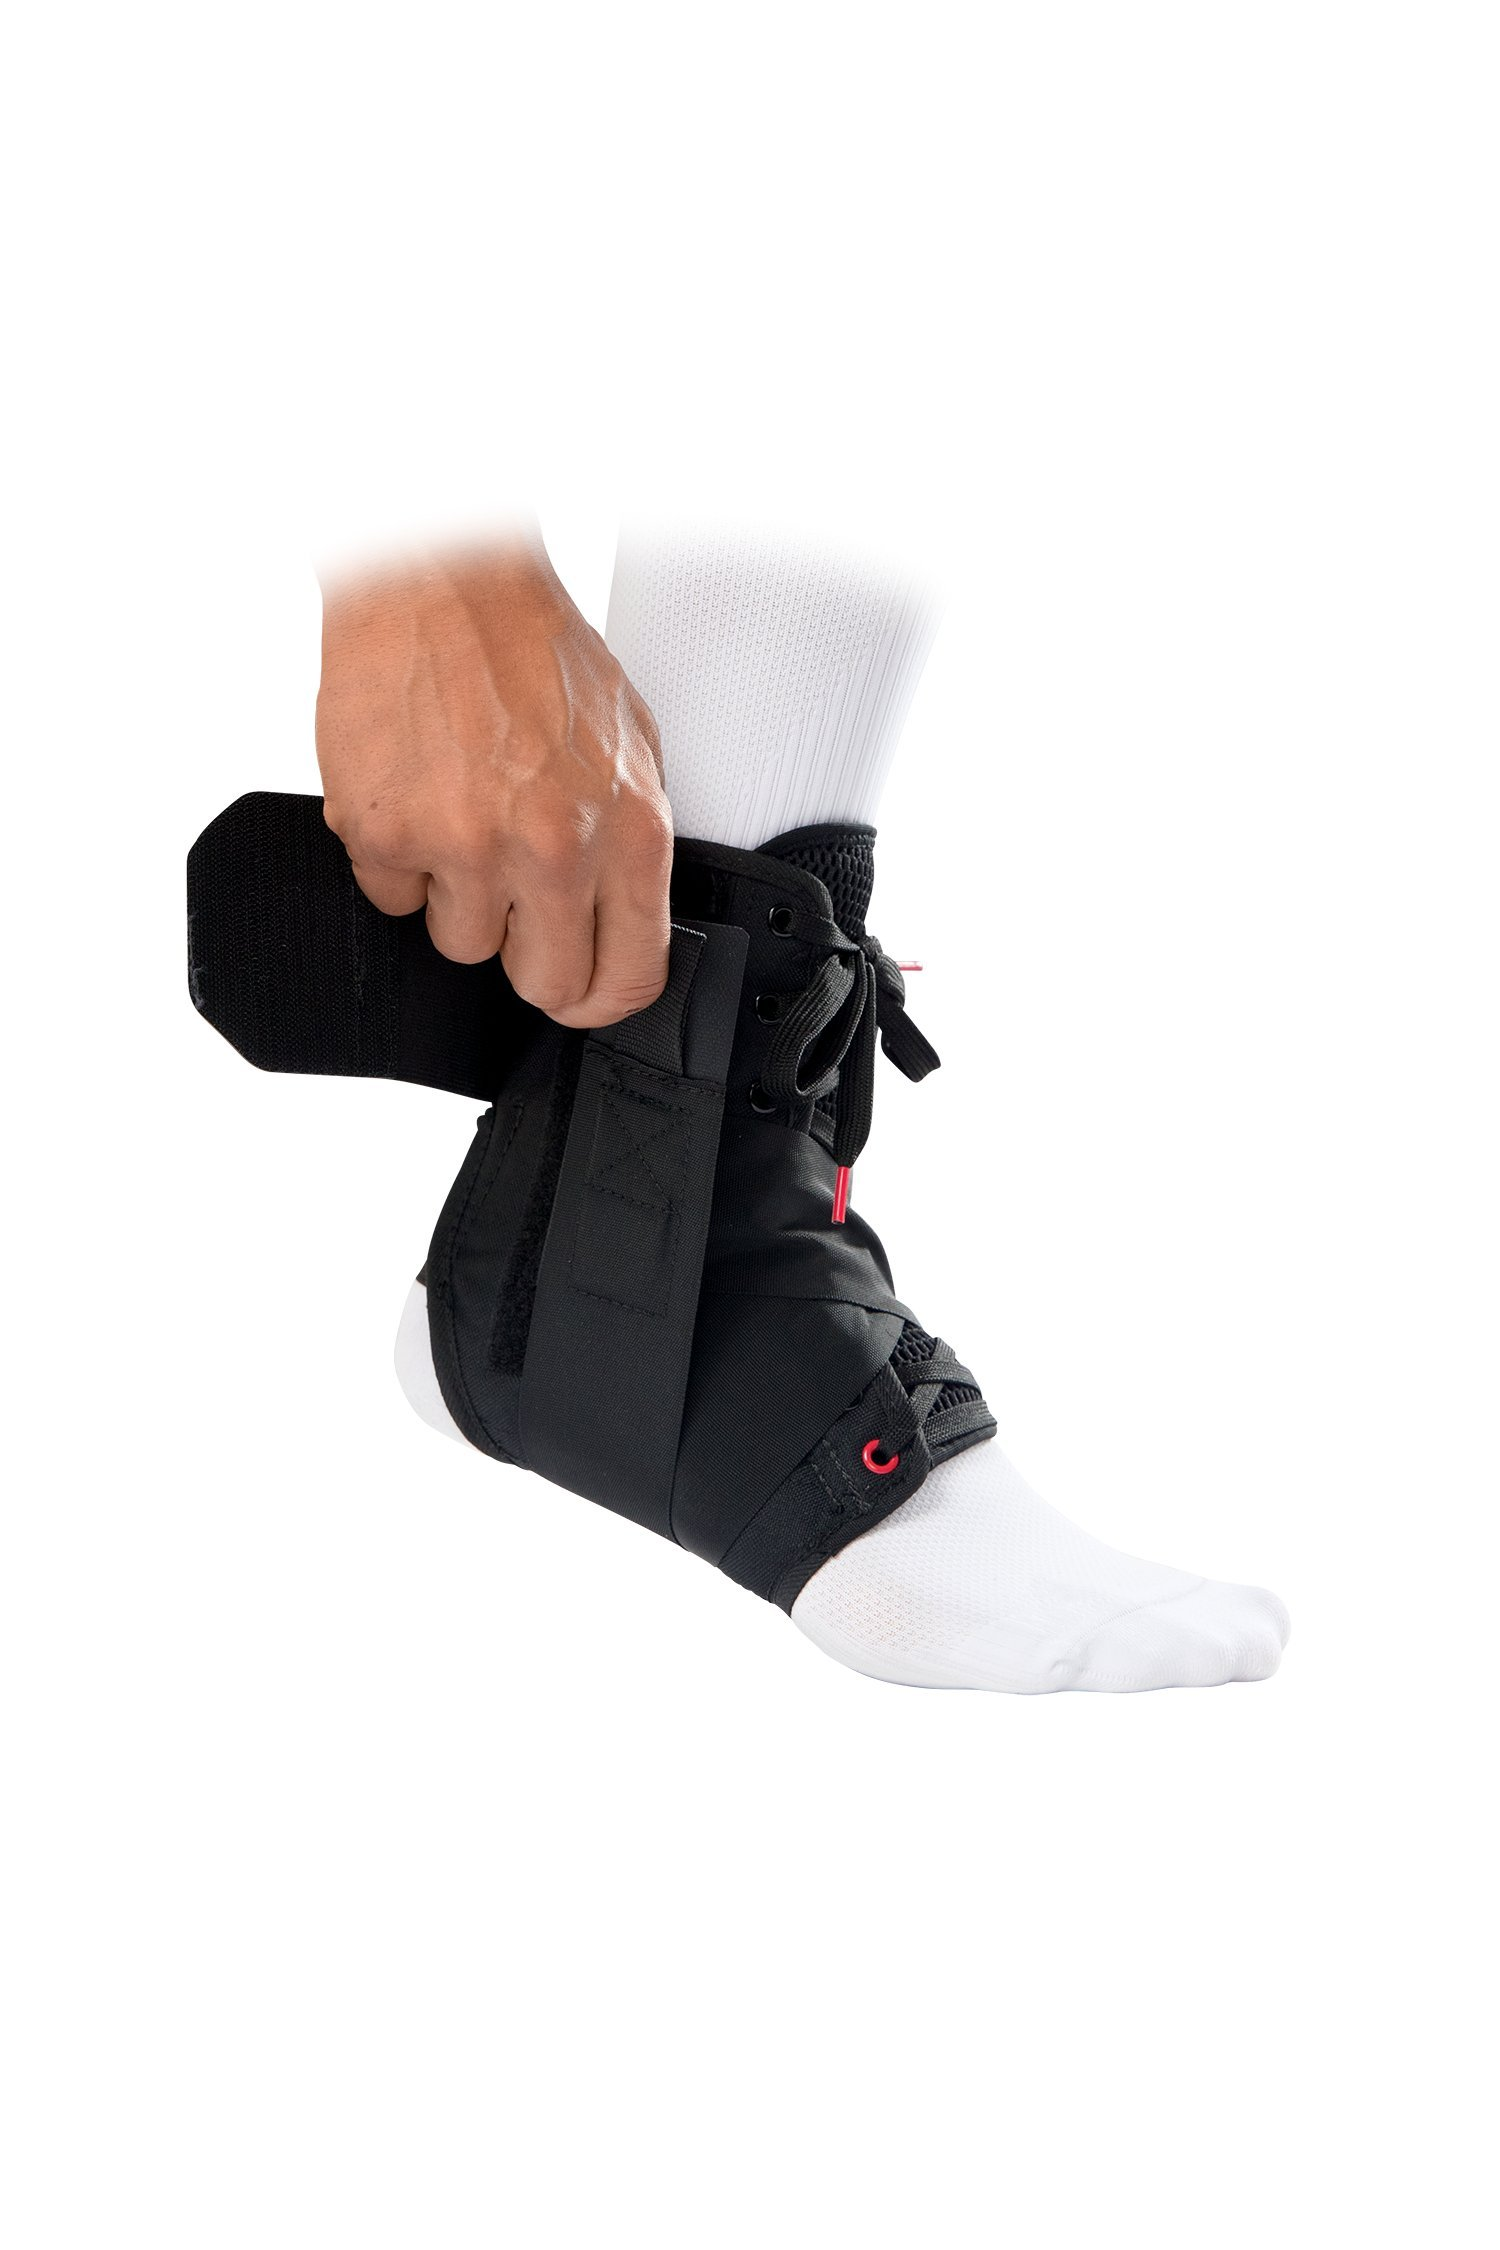 McDavid Level 3 Ankle Brace with Straps, Gray, X-Small by McDavid (Image #4)